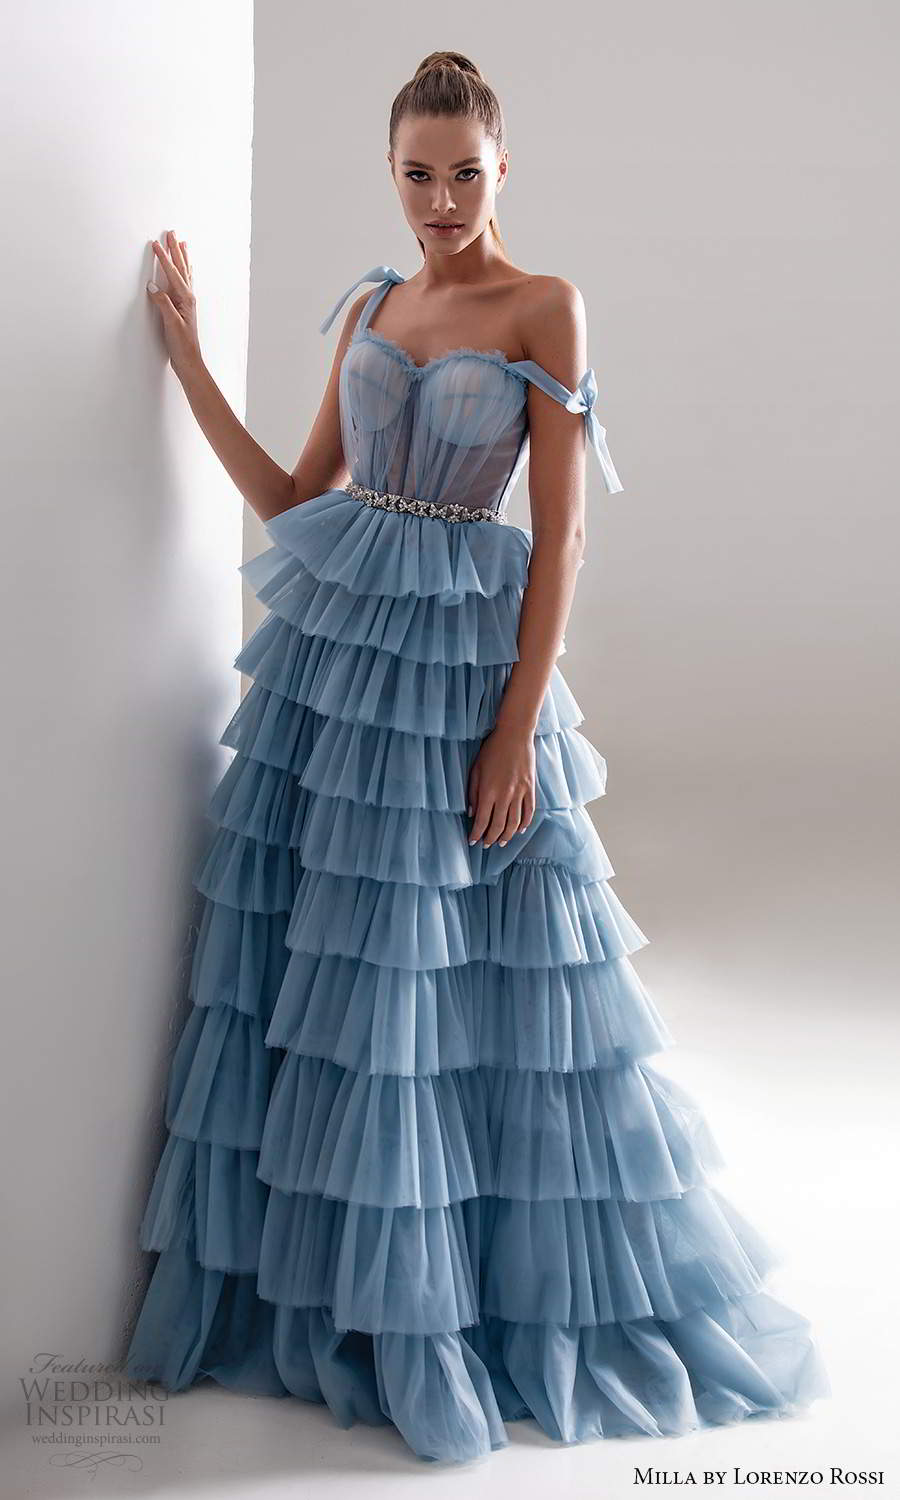 milla by lorenzo rossi 2020 rtw sleeveless straps sweetheart neckline ruched bodicea a line ball gown wedding dress ruffle tier skirt light blue color (10) mv